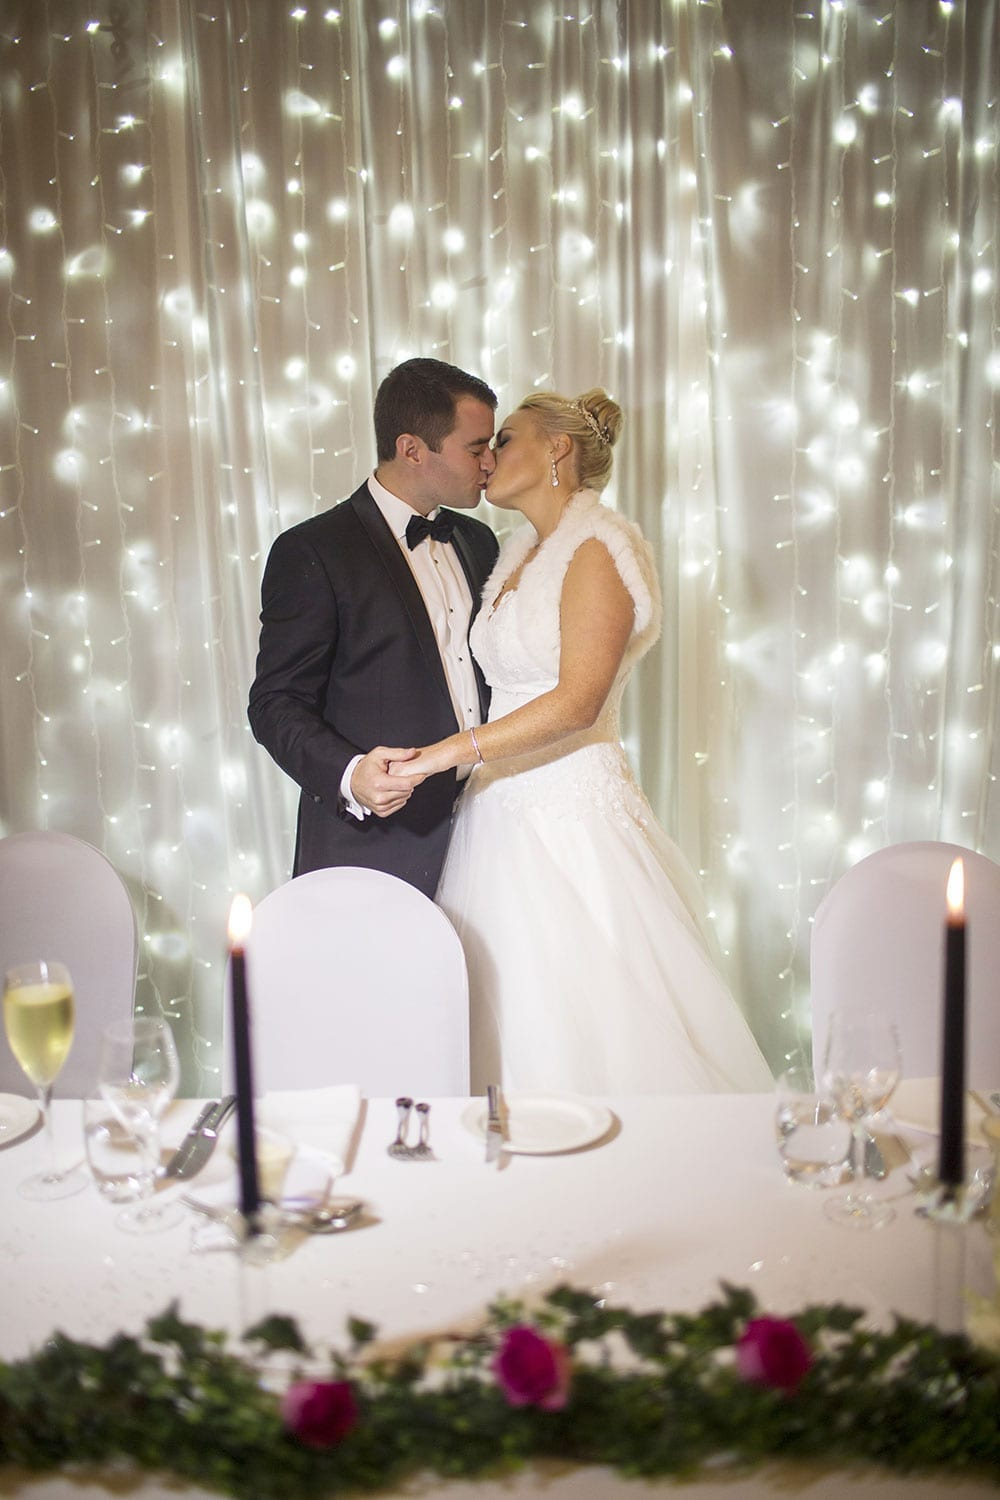 Real Weddings | Vinka Design | Real Brides Wearing Vinka Gowns | Kristen and Ben kissing at wedding reception table